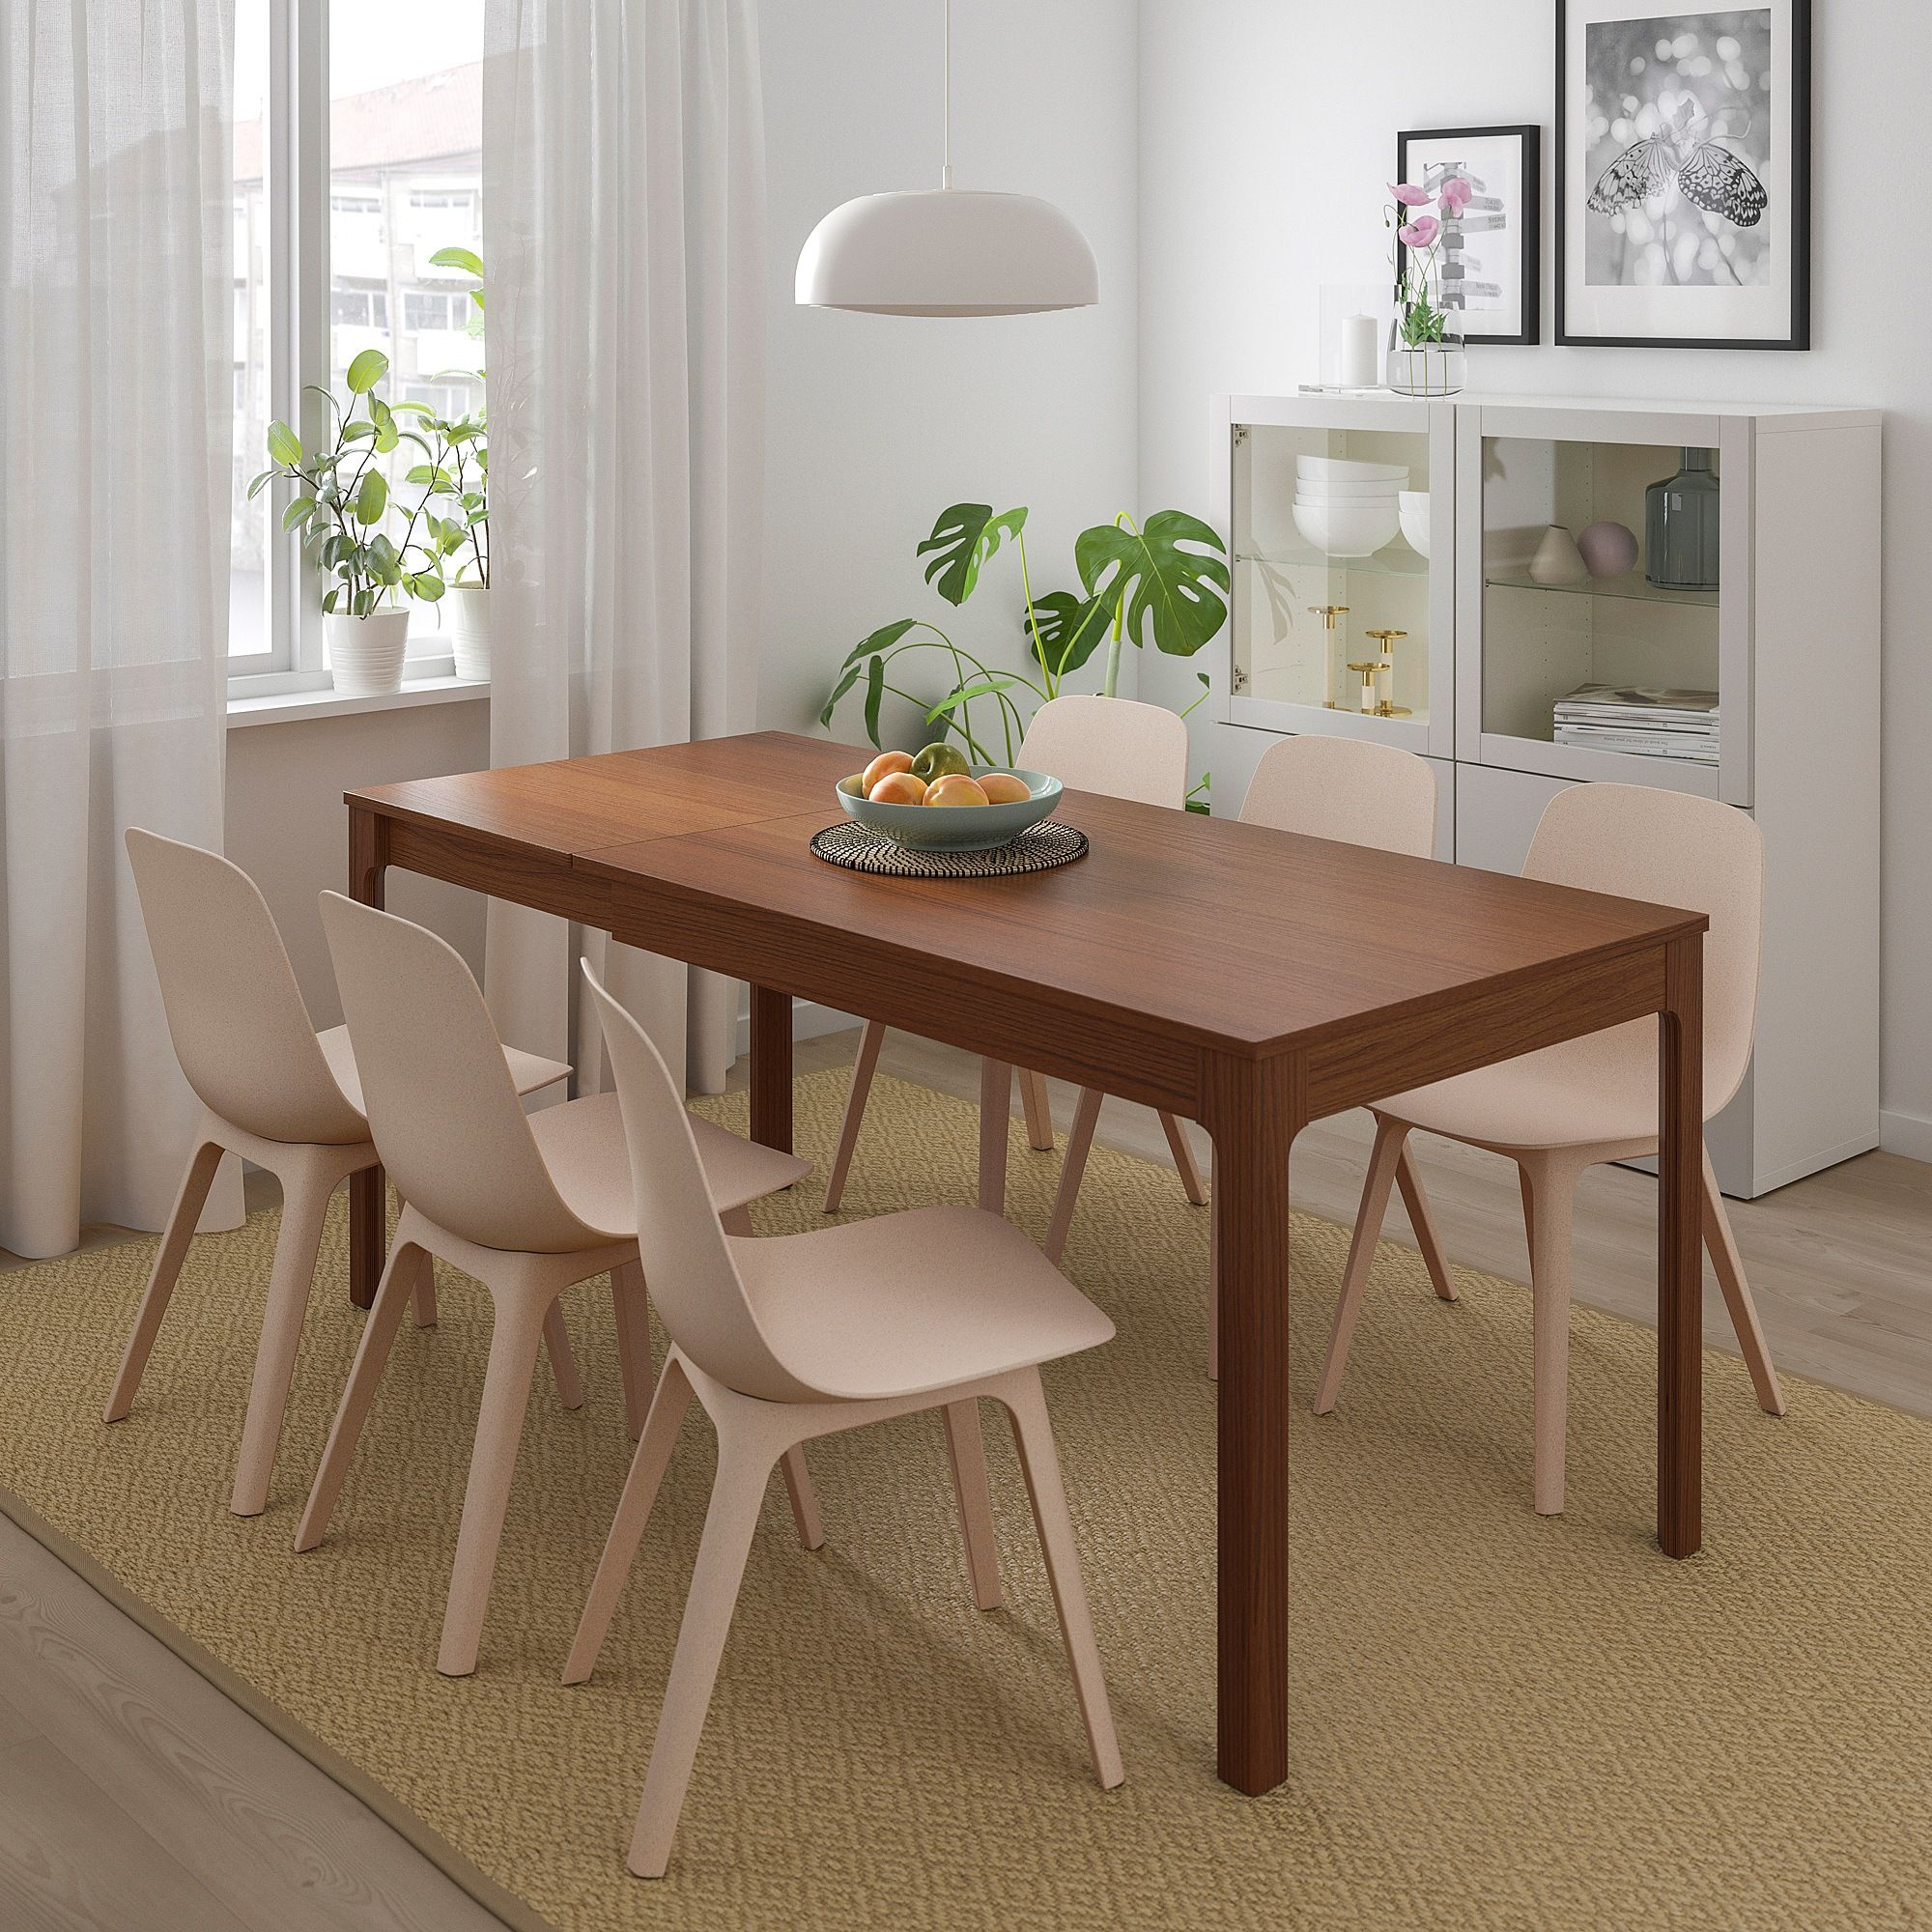 IKEA EKEDALEN / ODGER Brown, White Beige Table and 4